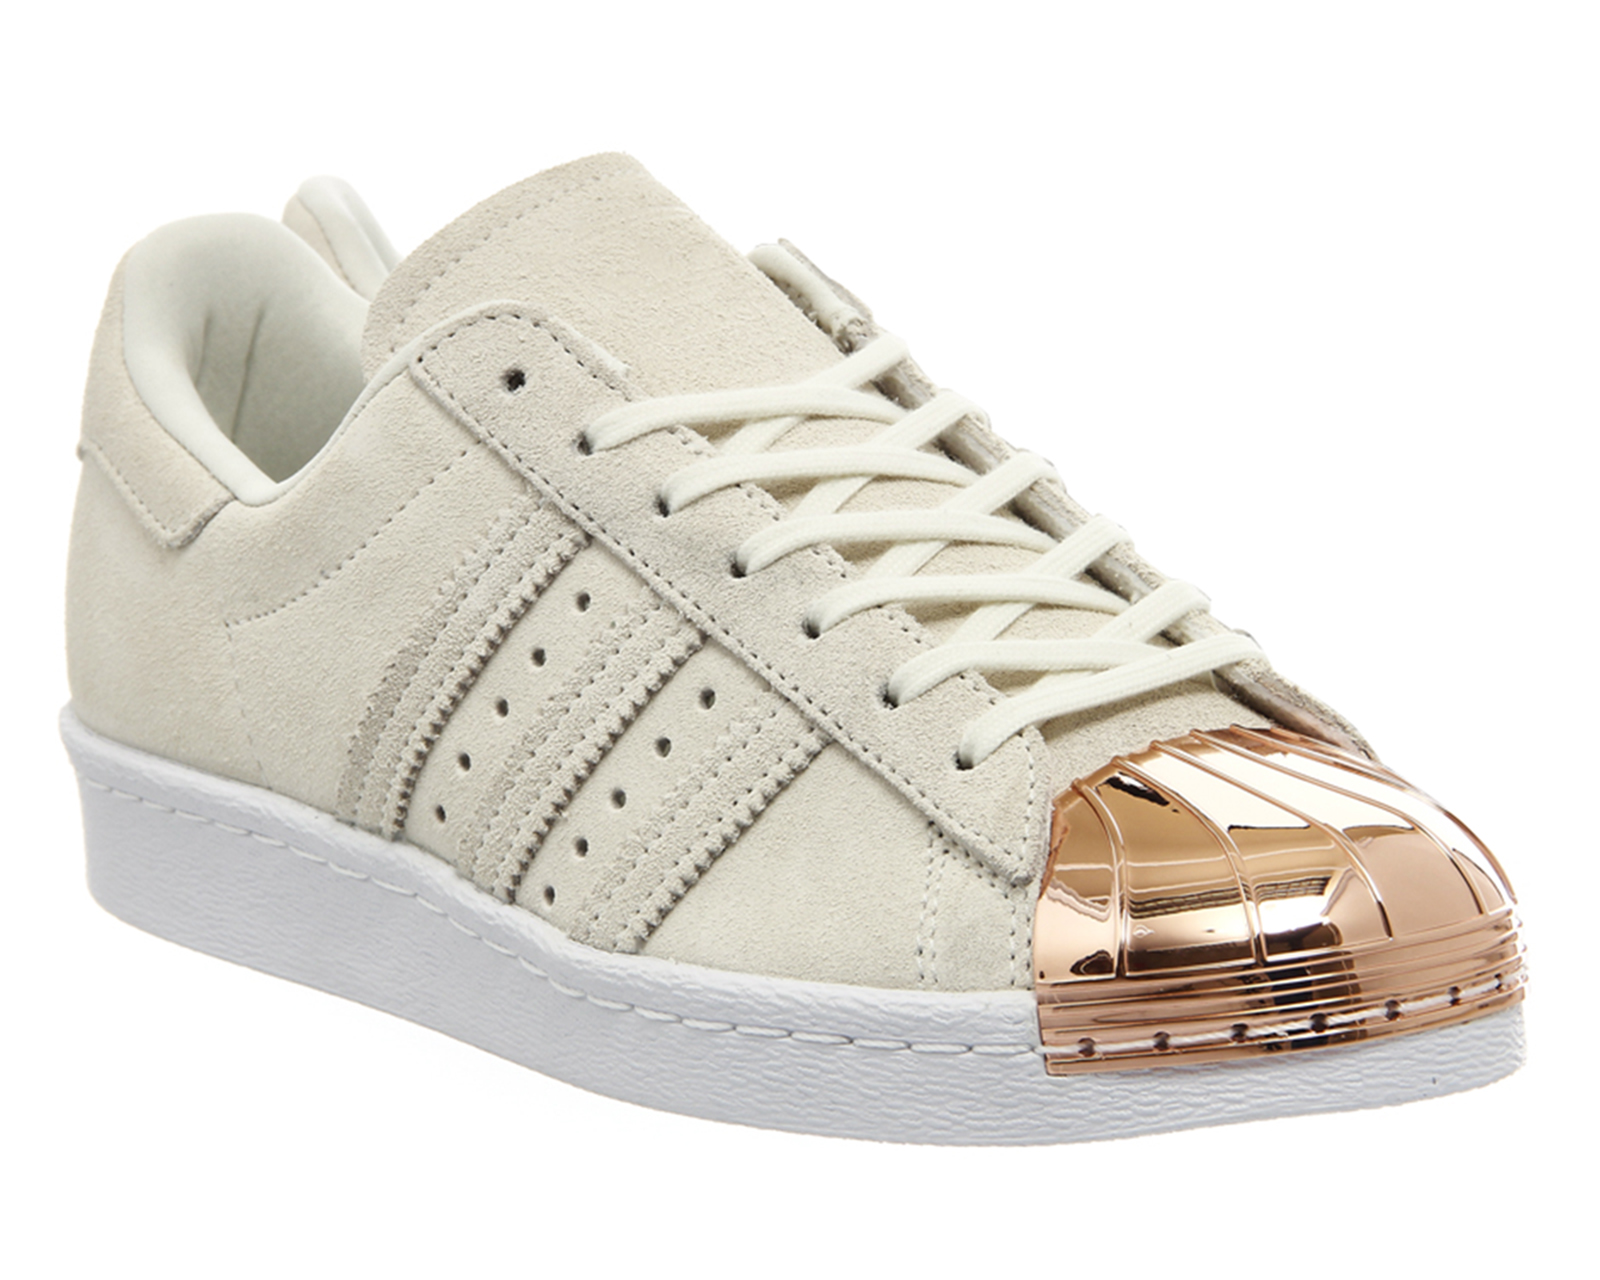 Adidas Superstar Shoes Pink Stripe